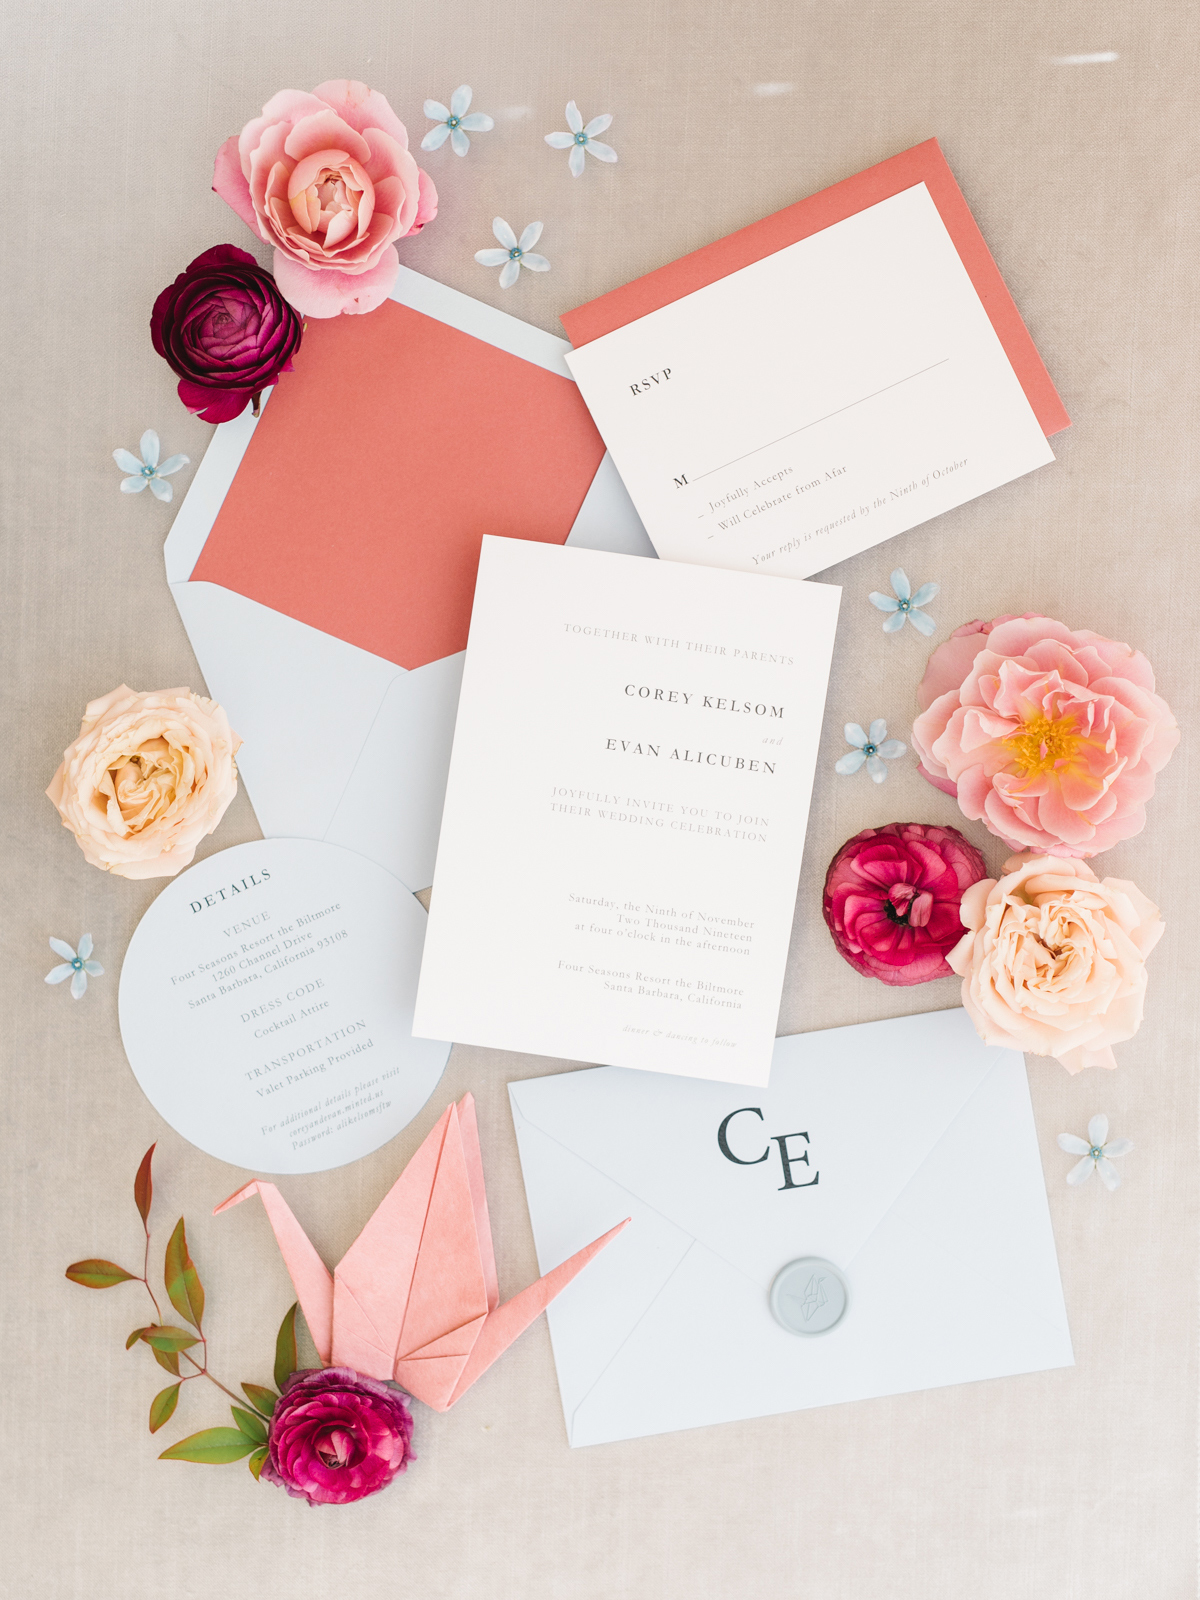 coral and cream wedding invitations with flower and crane accents